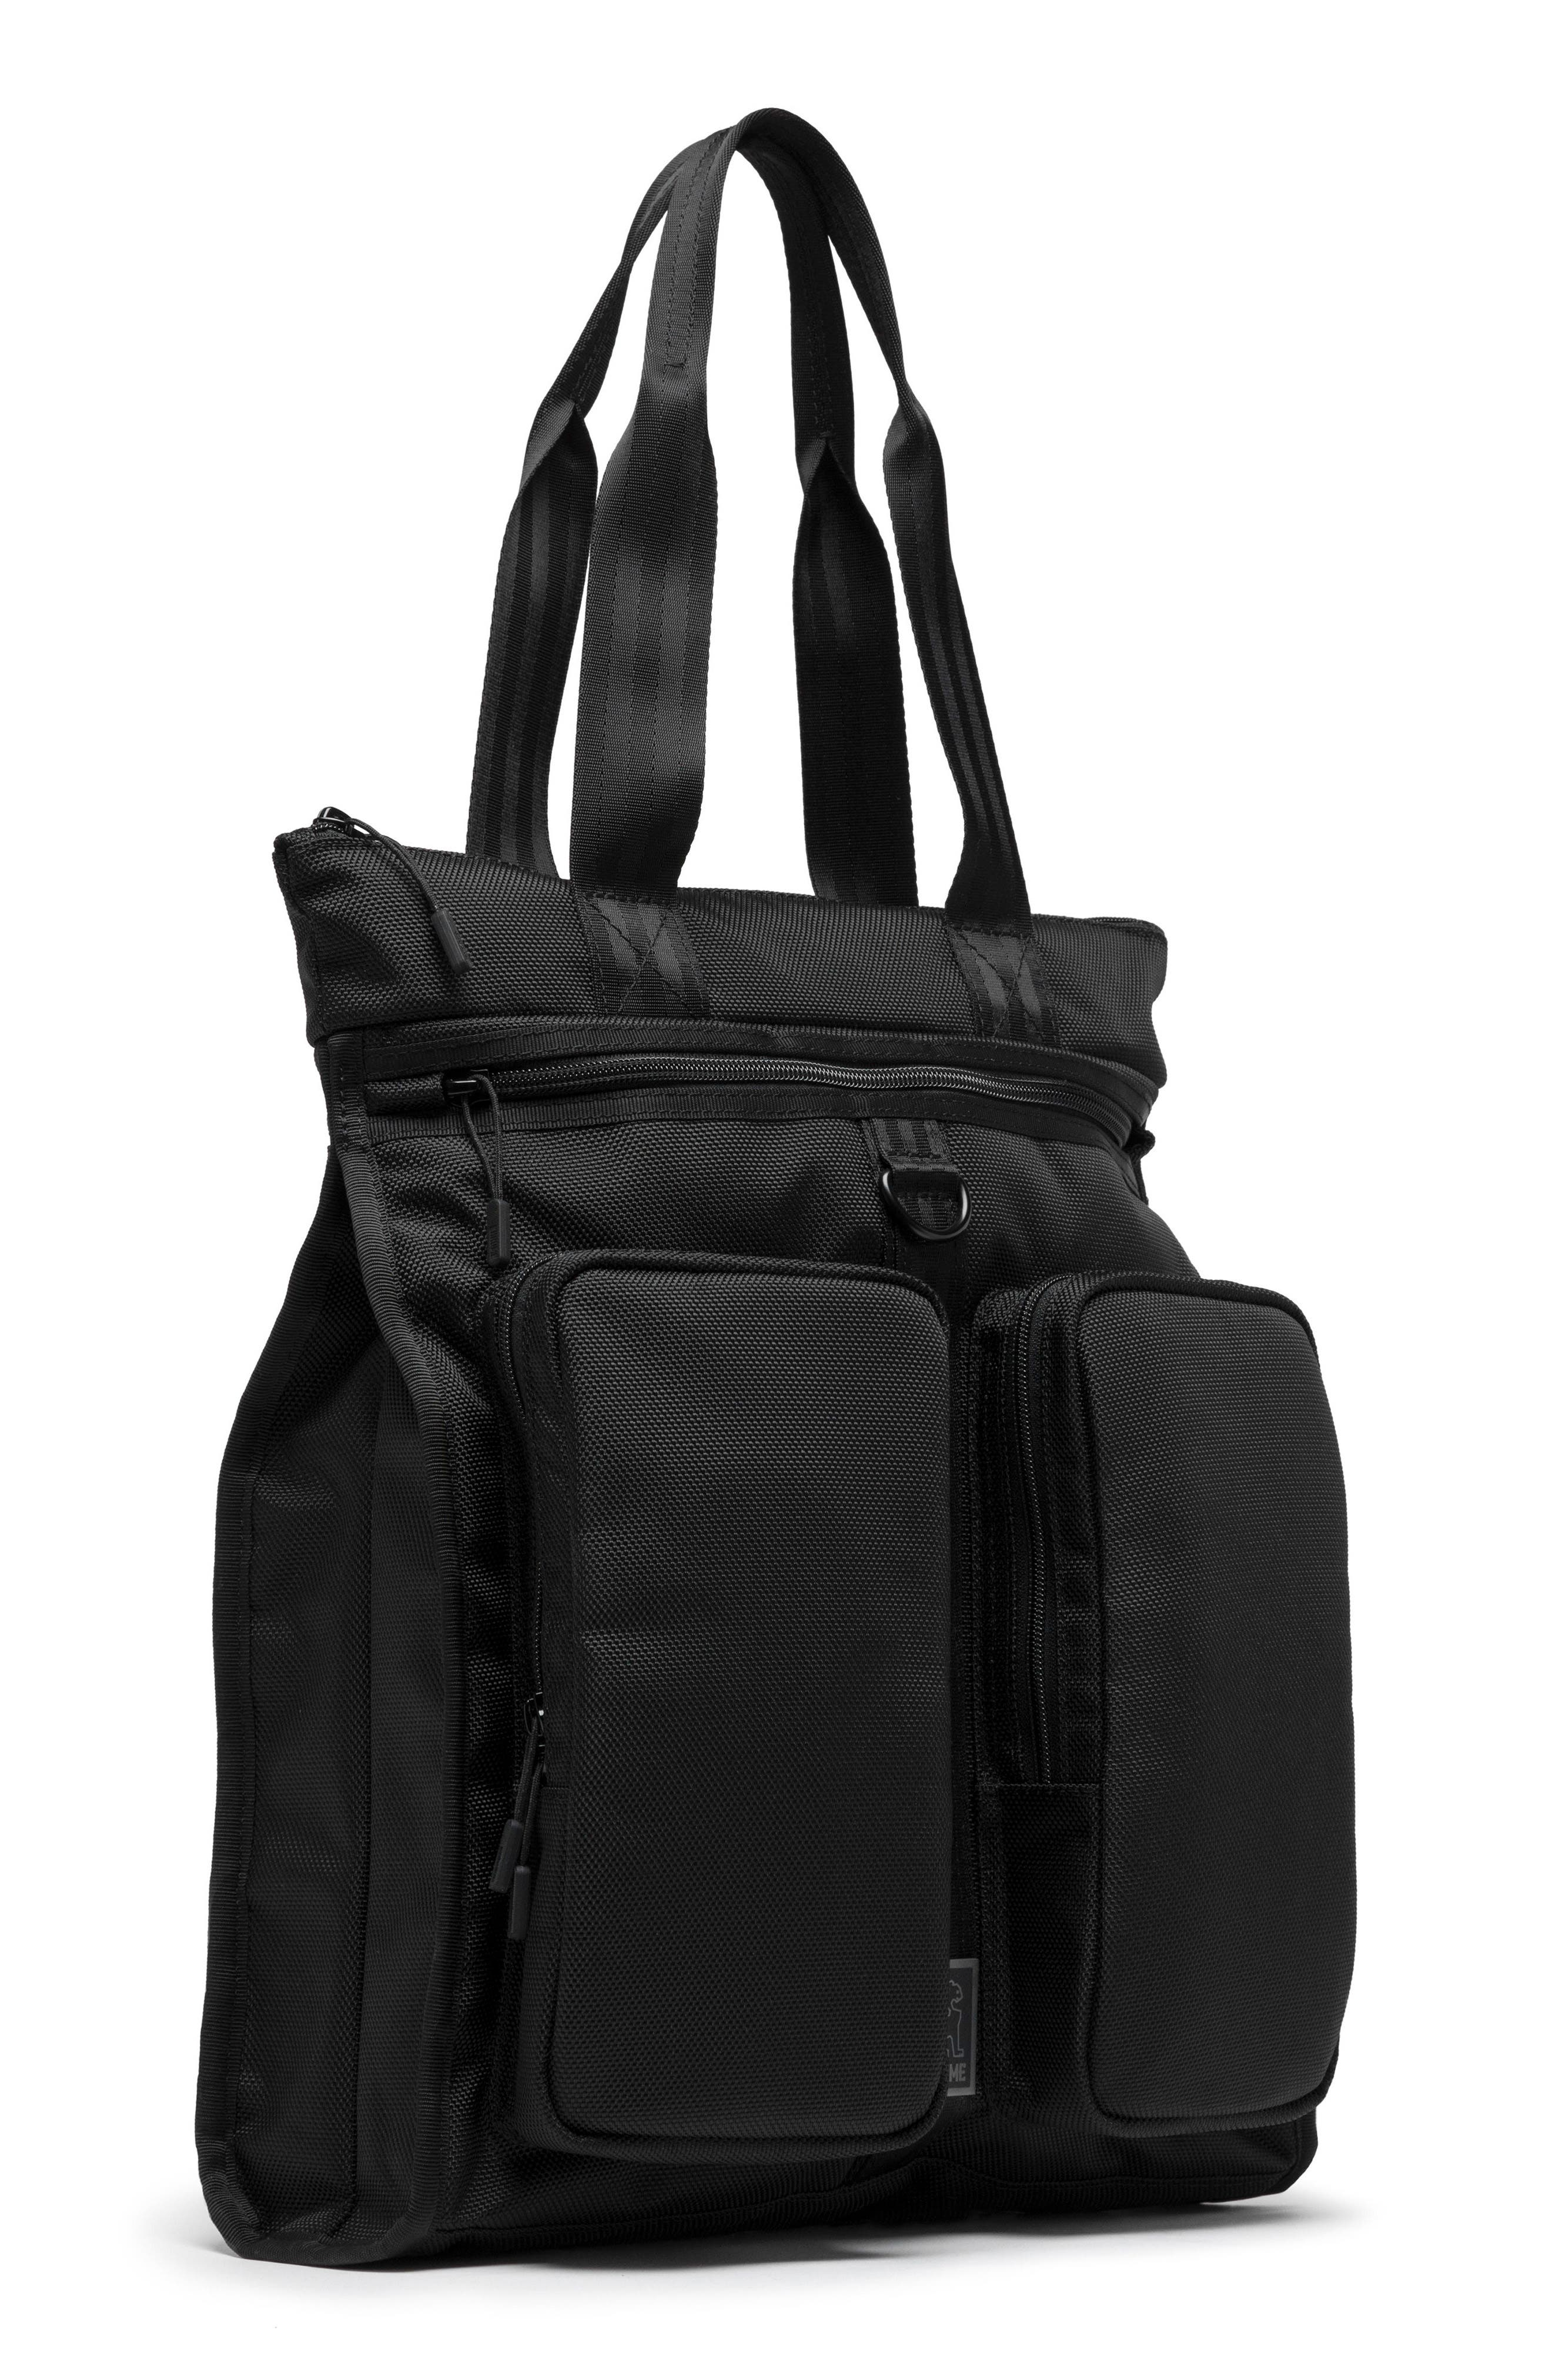 MXD Pace Tote Bag,                             Alternate thumbnail 5, color,                             All Black